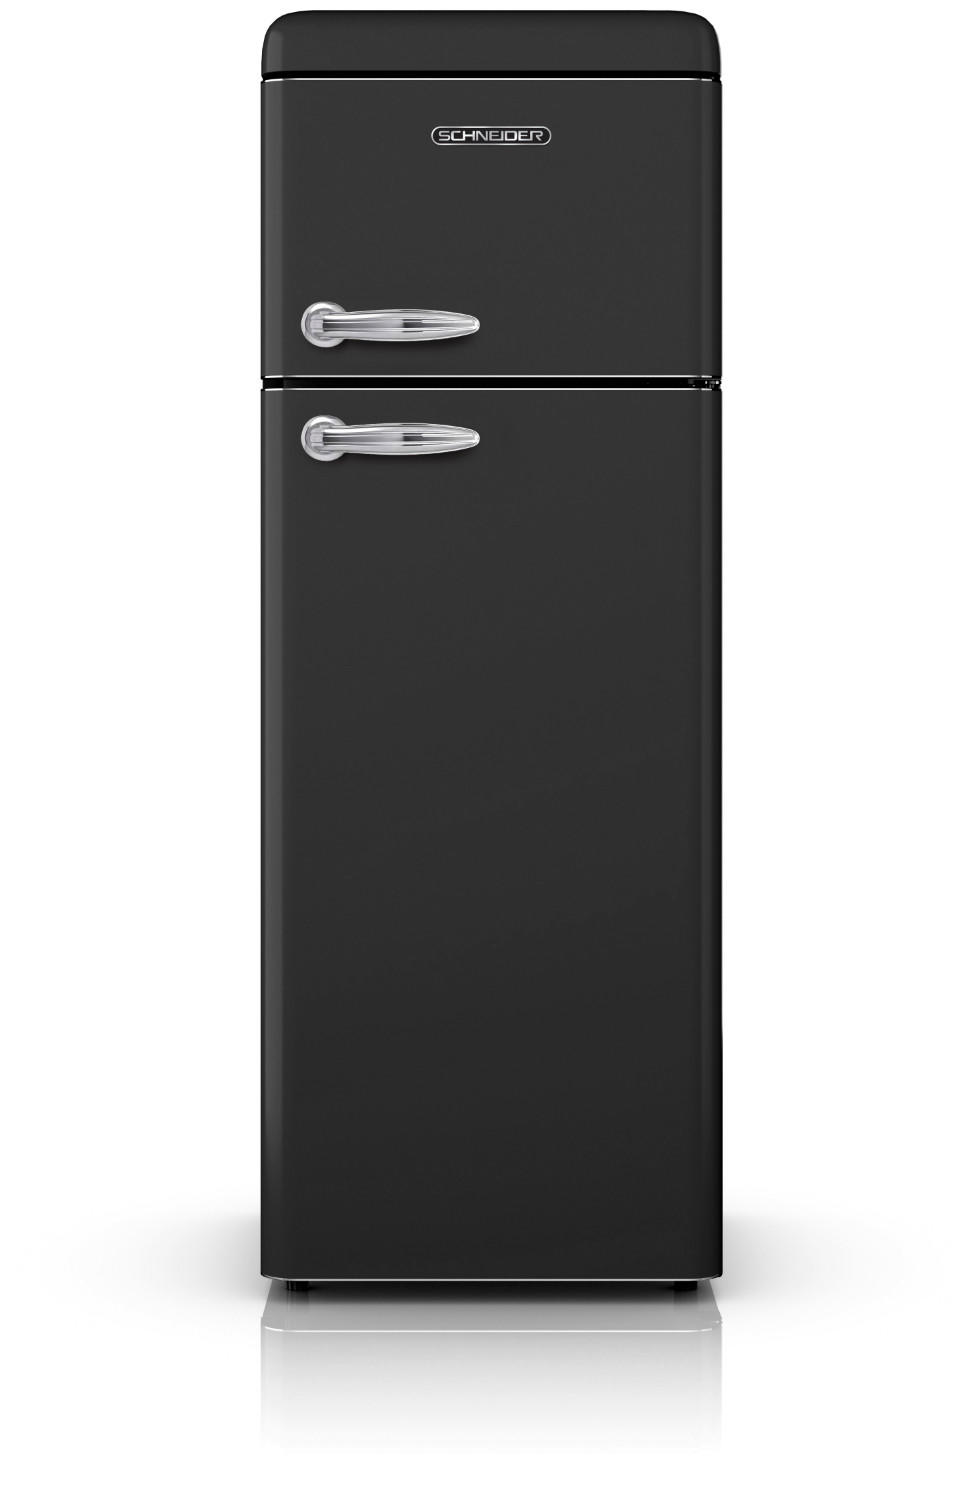 Vintage refrigerator with 2 doors in black 208L - Schneider